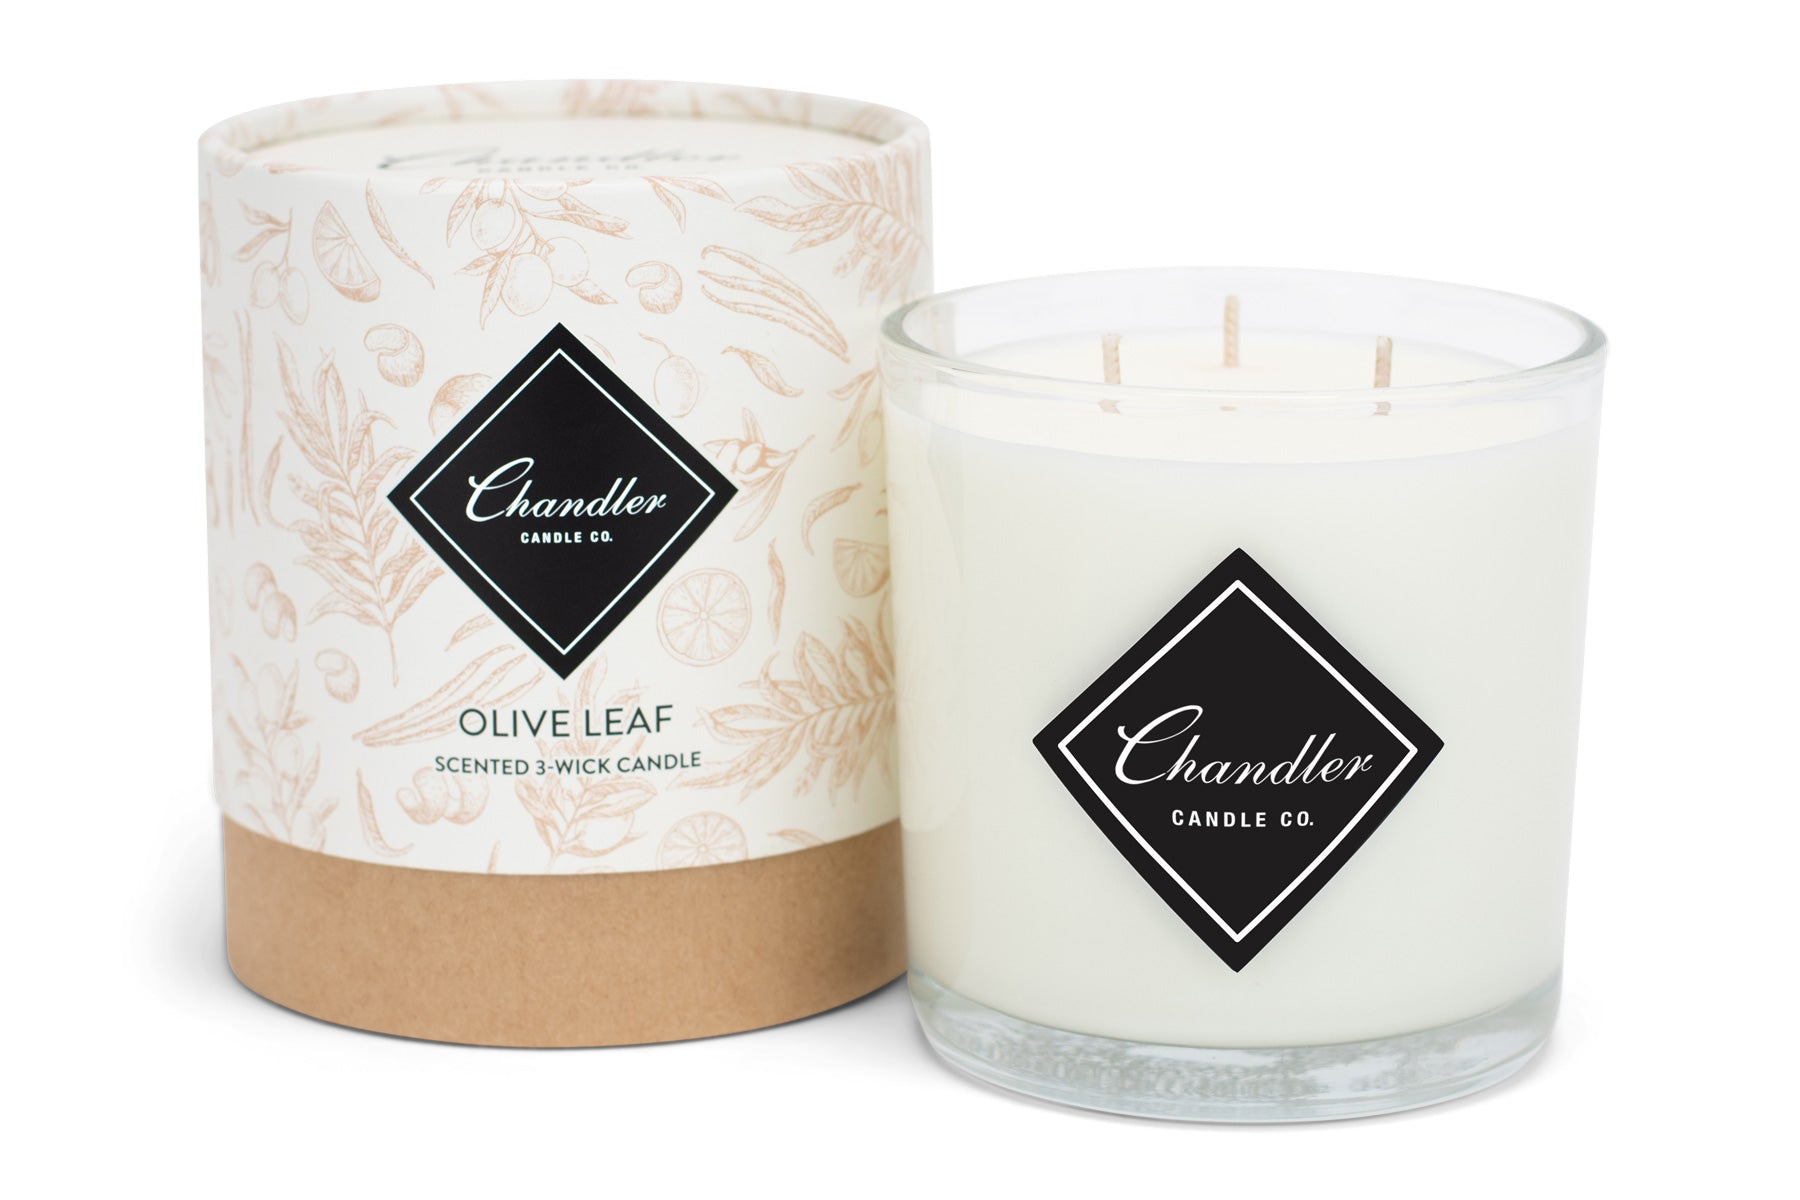 Large 3-Wick Olive Leaf Scented Candle